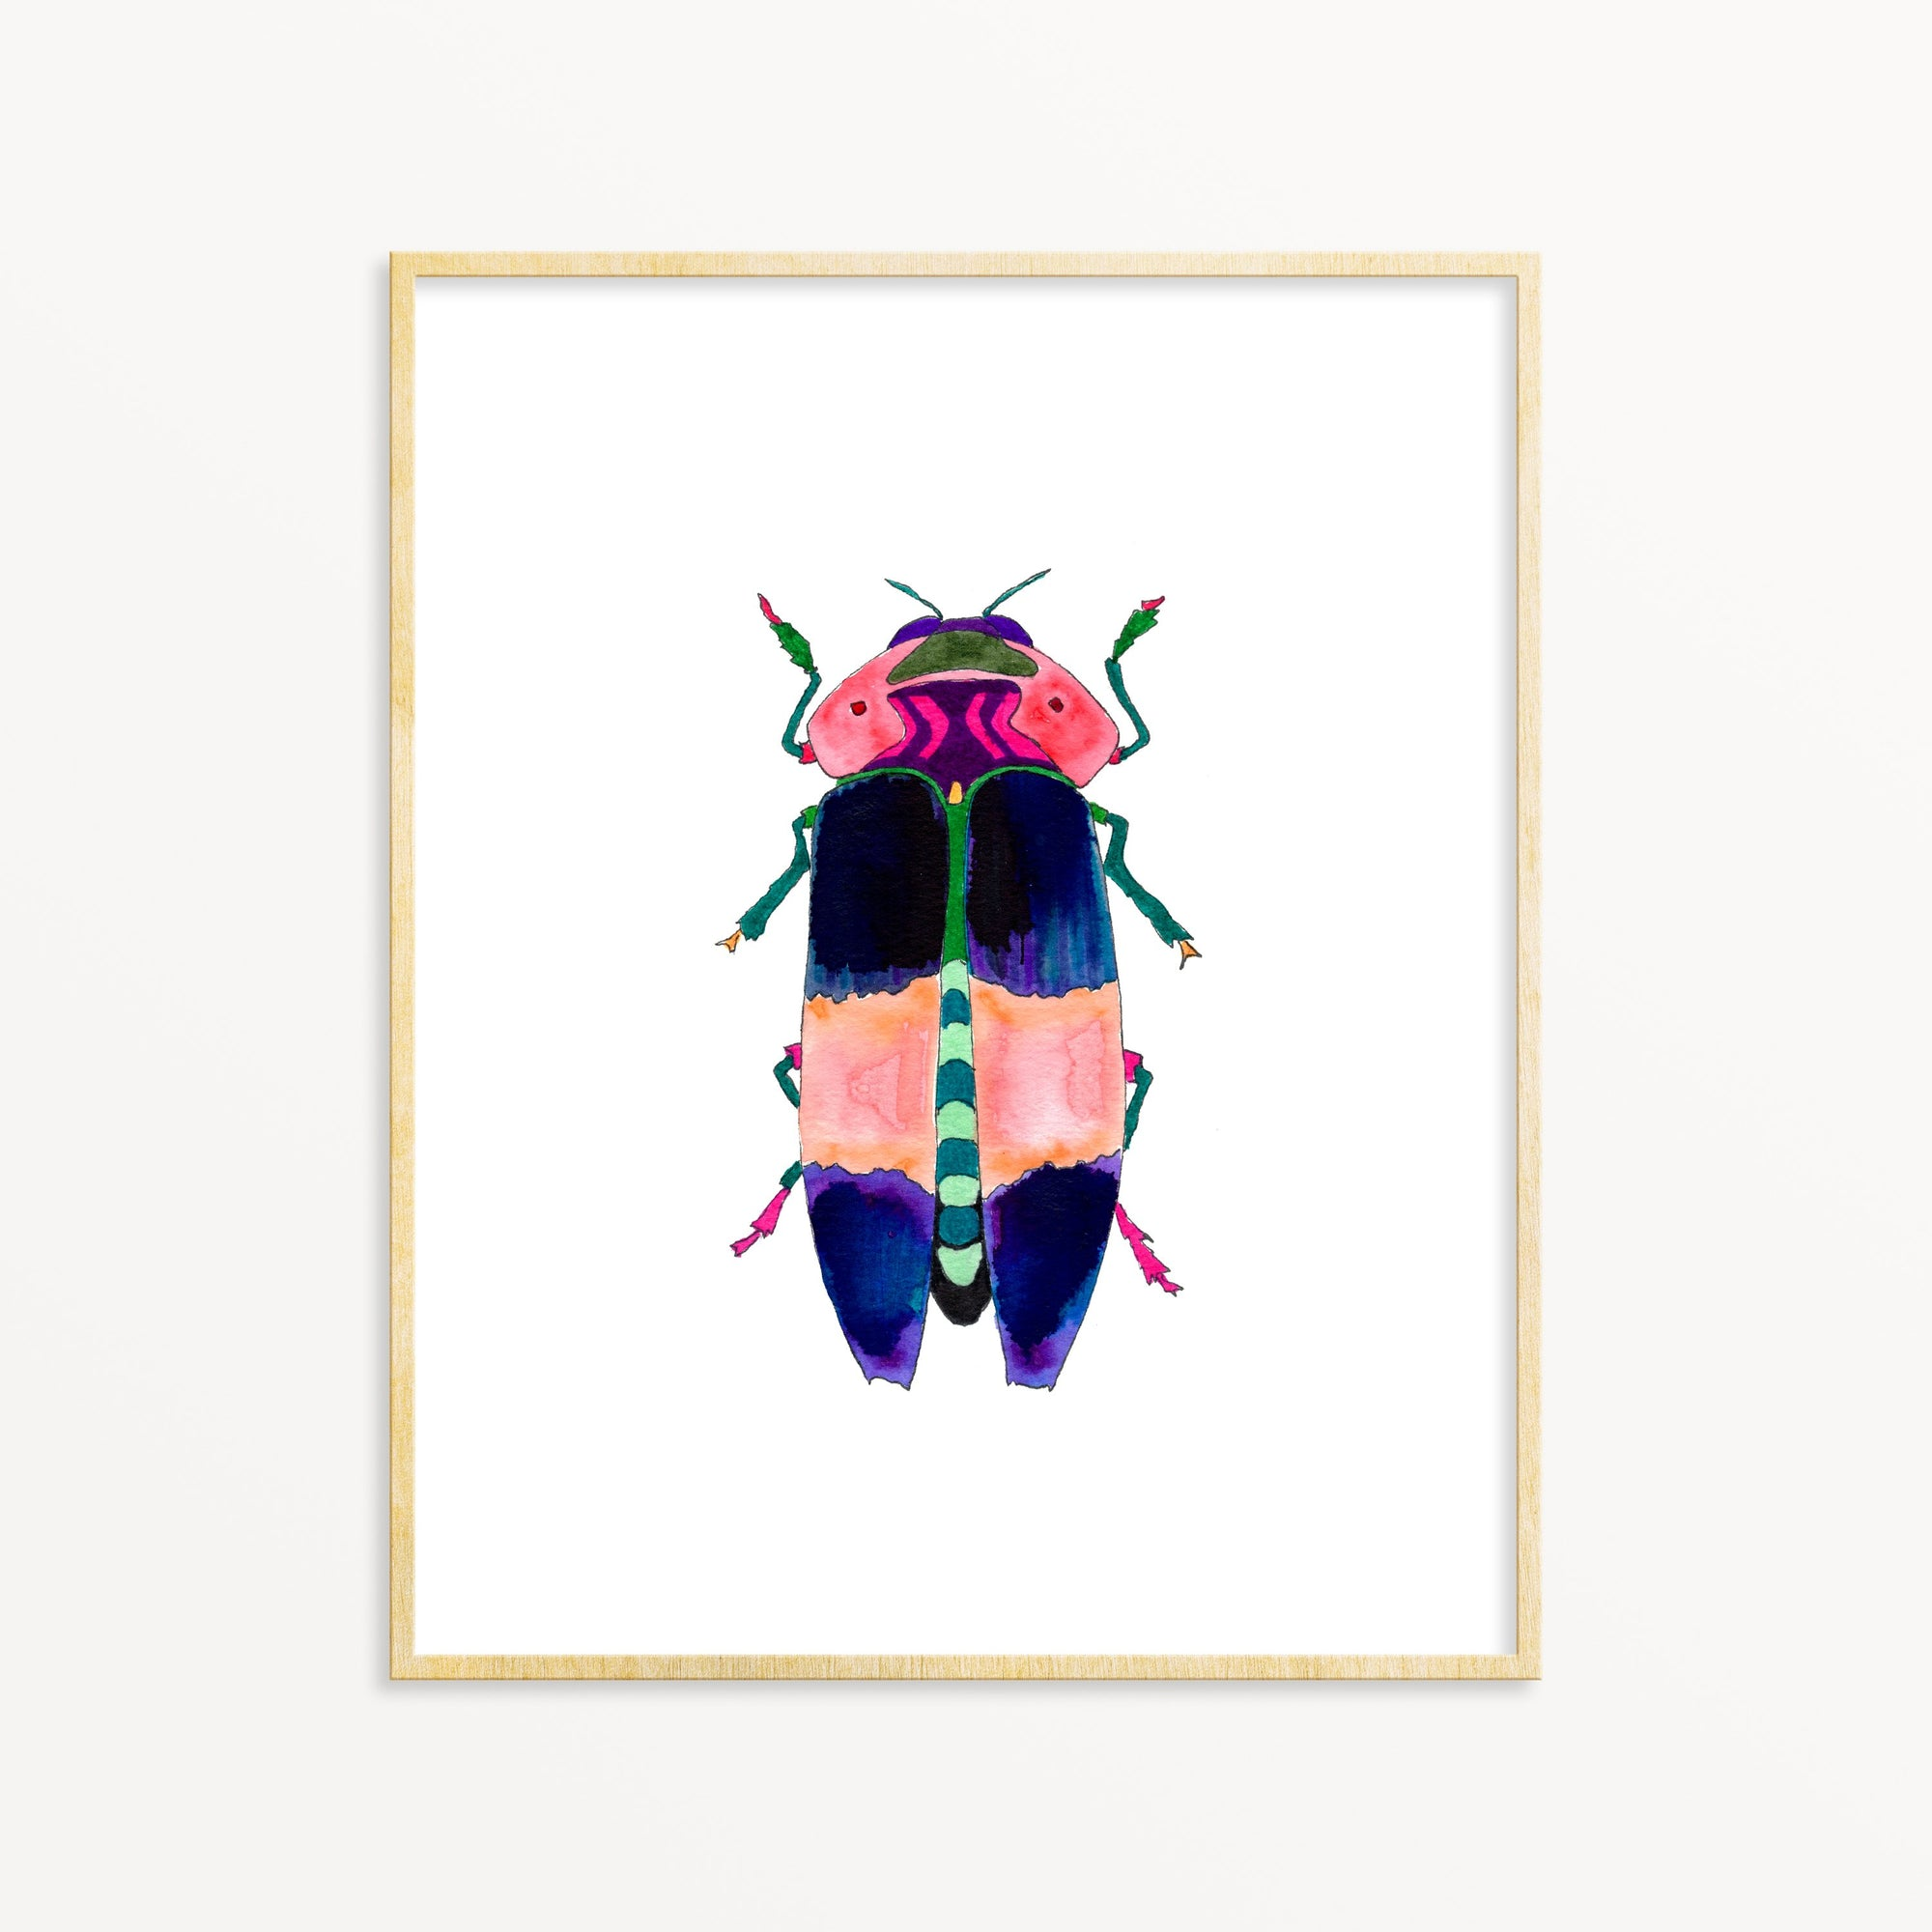 Beetle No. 1